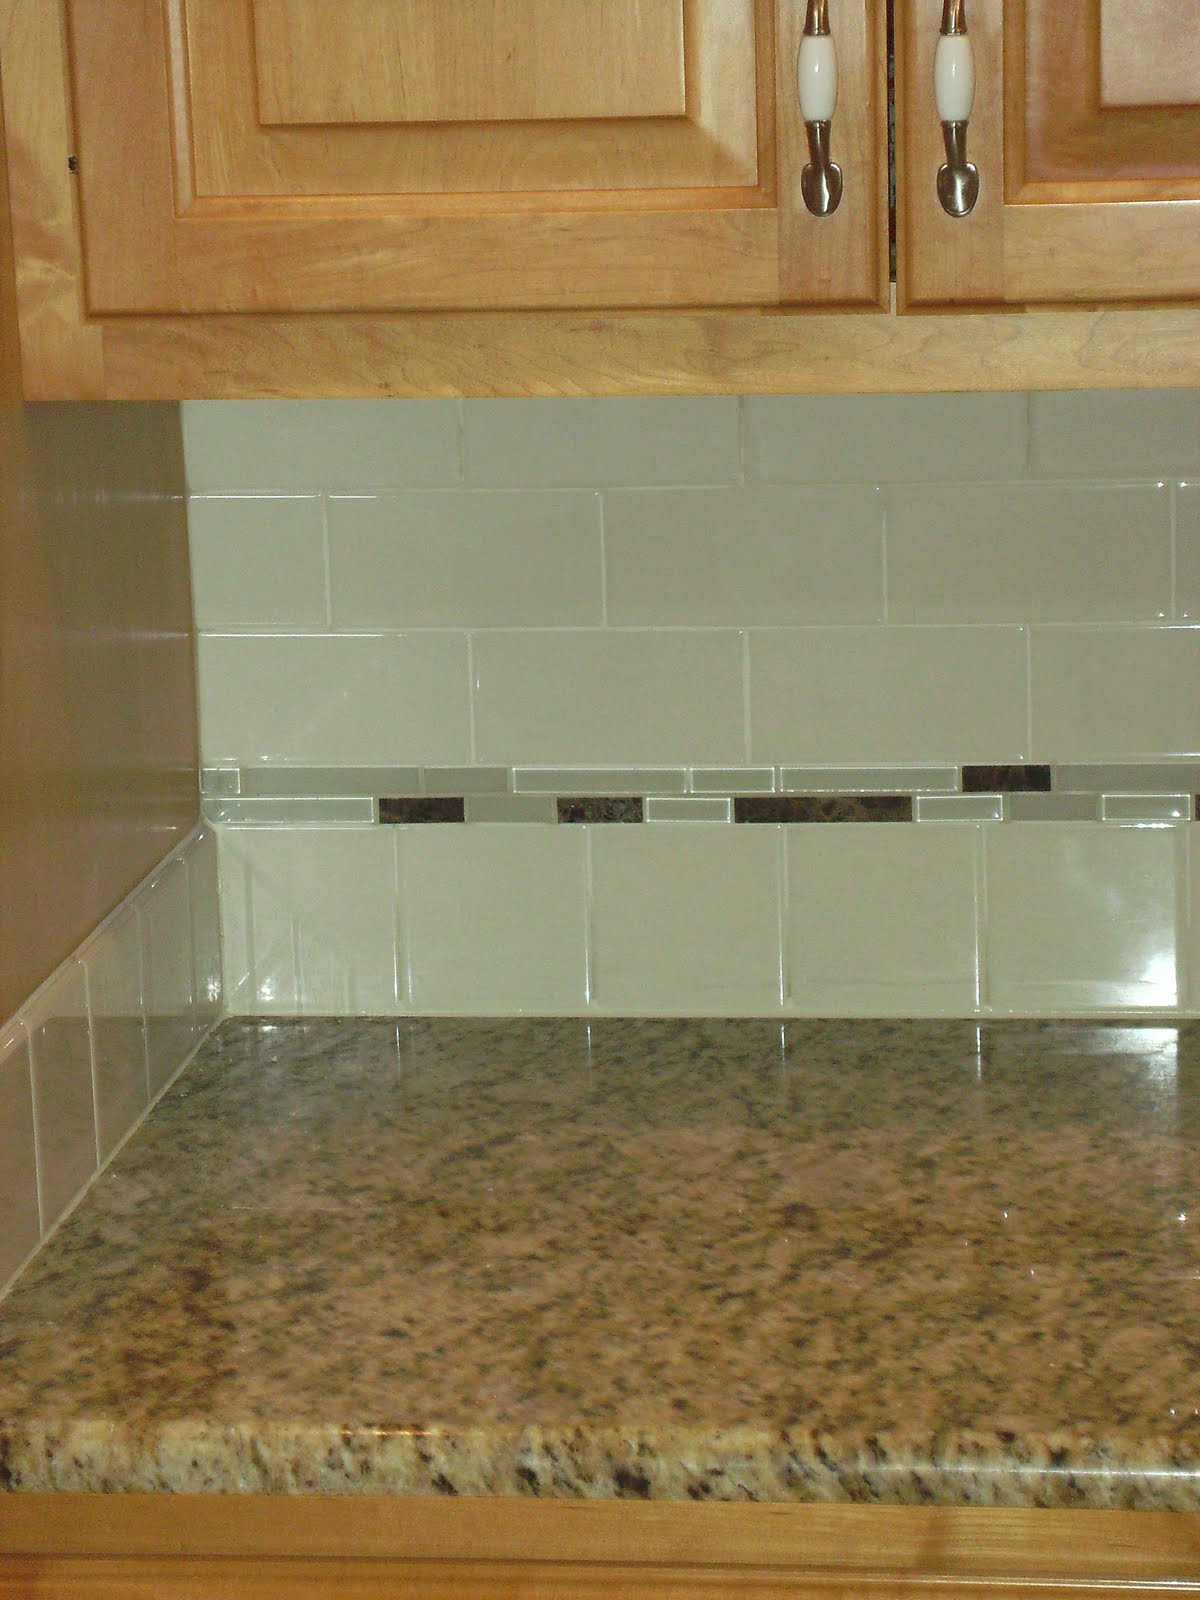 Tiles Kitchen Backsplash Knapp Tile And Flooring Inc Subway Tile Backsplash